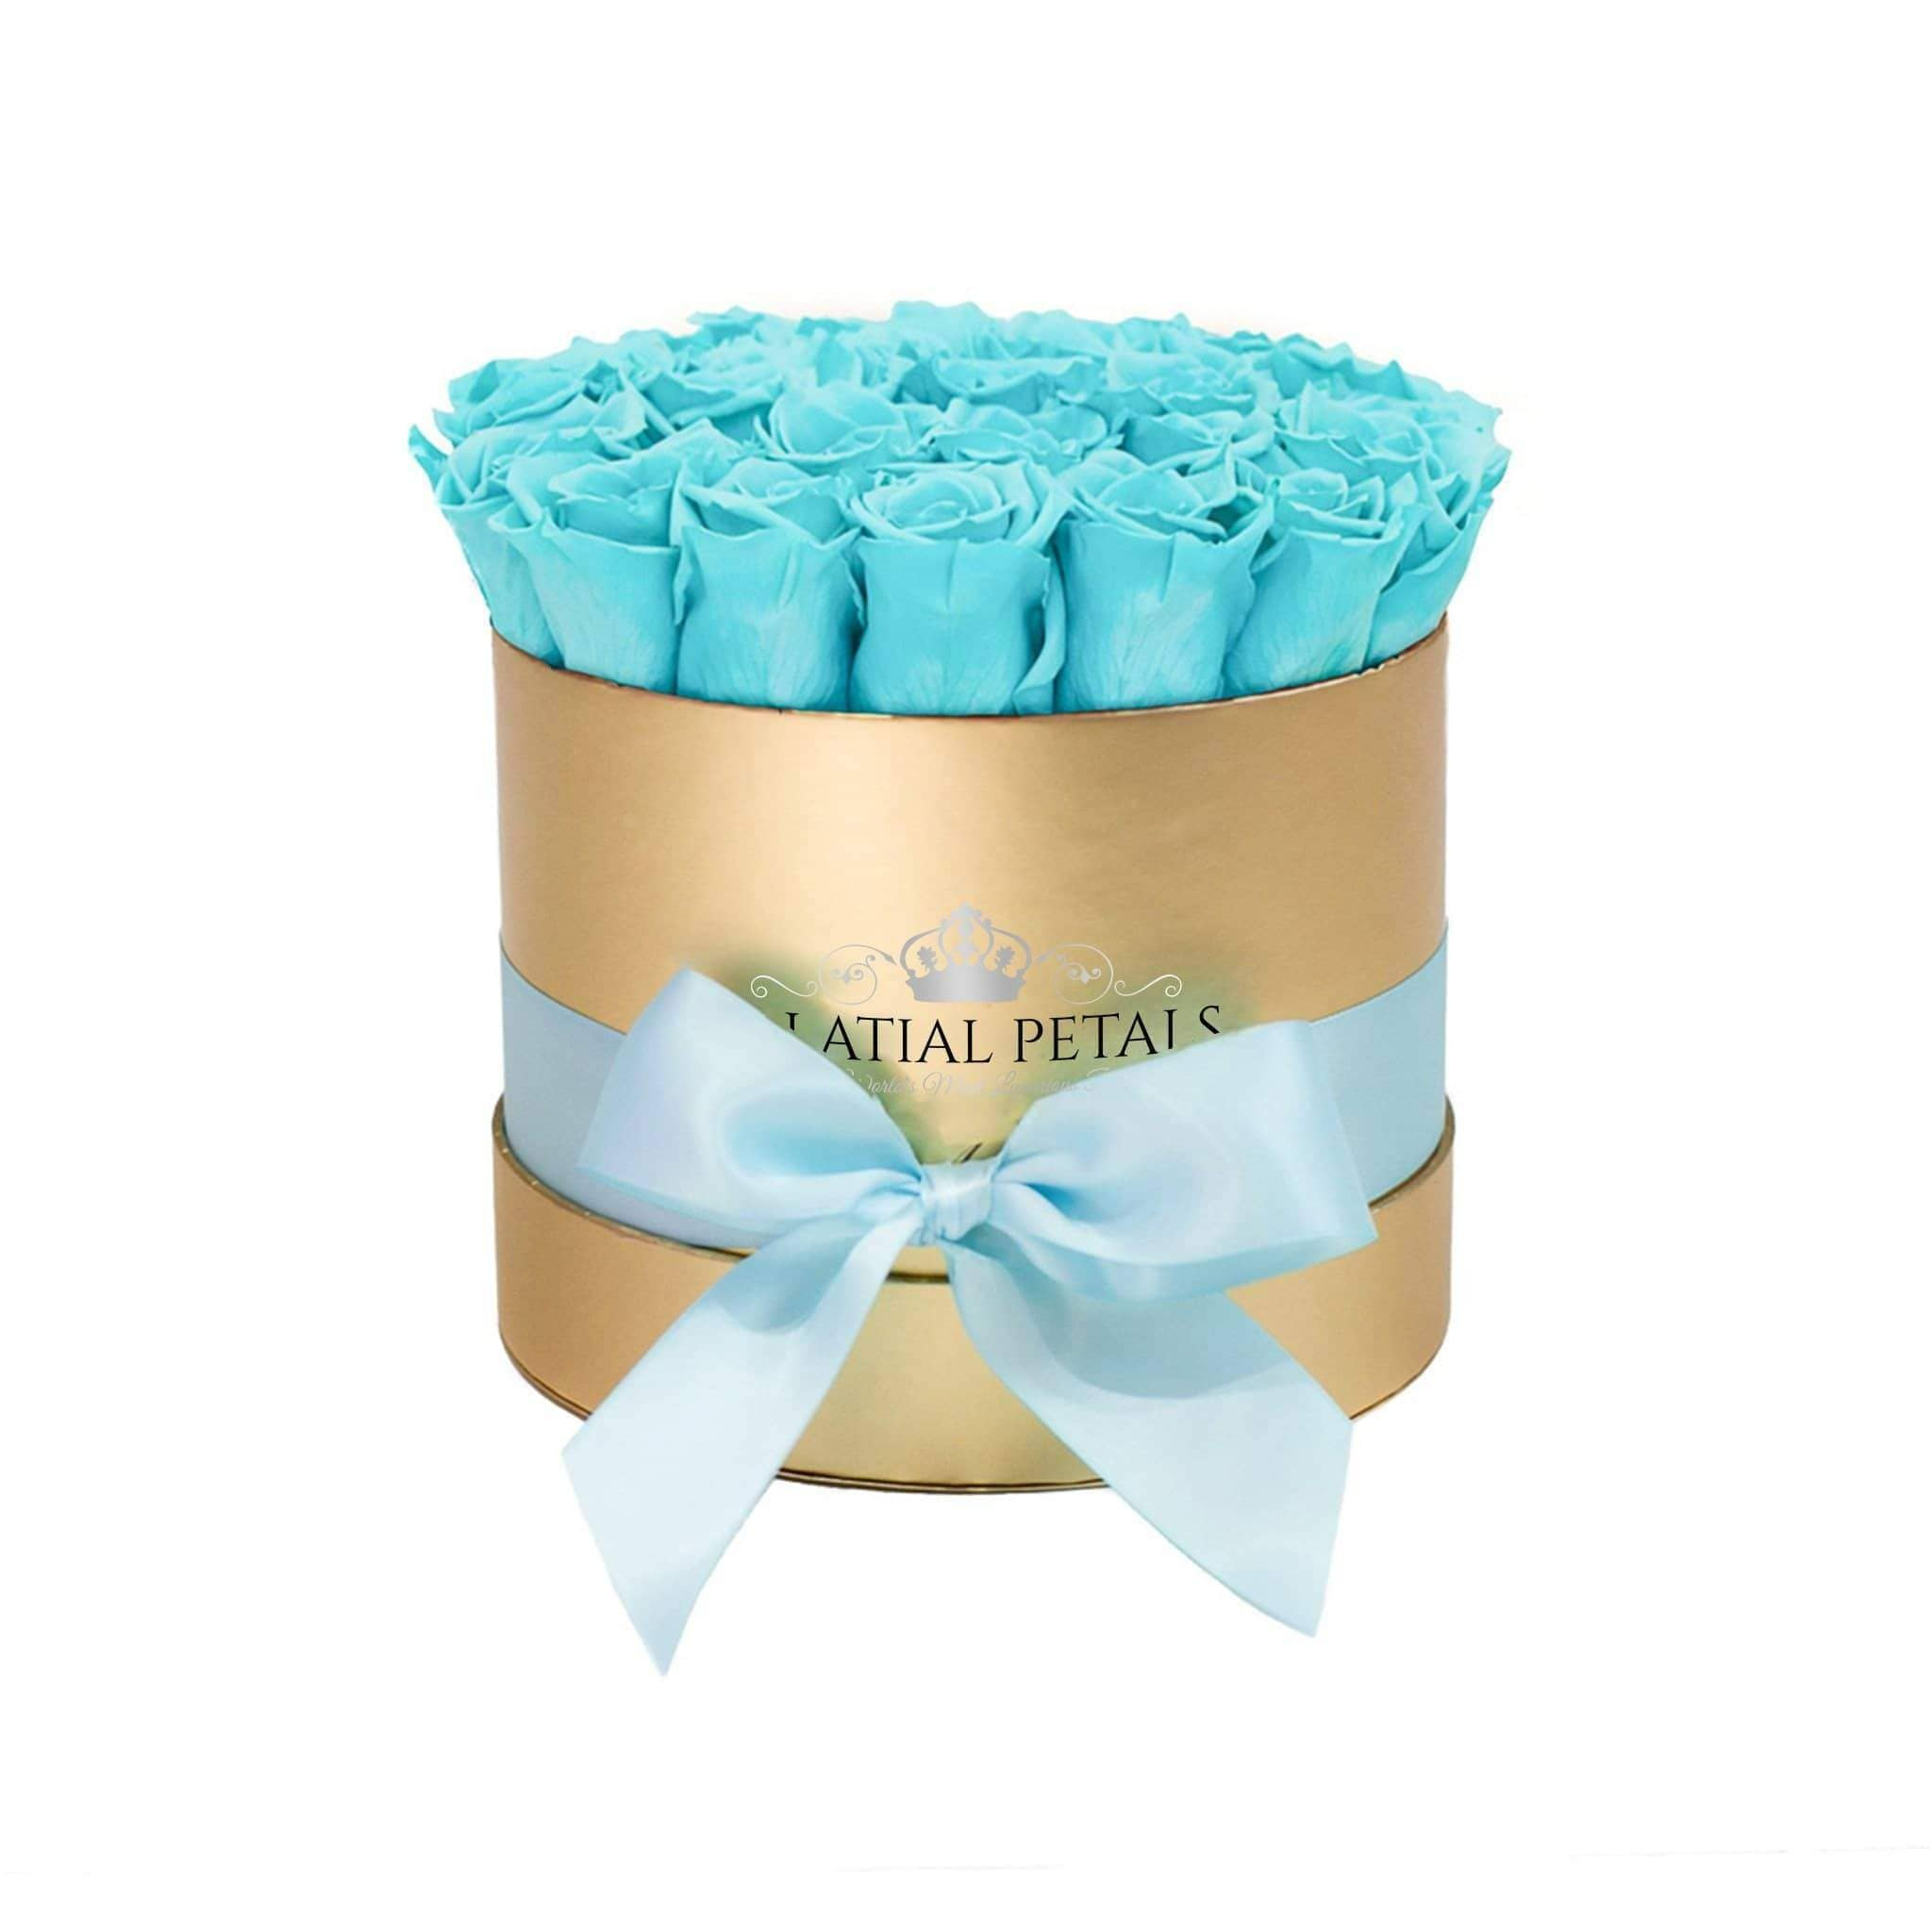 Tiffany Blue Roses That Last A Year - Classic Rose Box - Palatial Petals